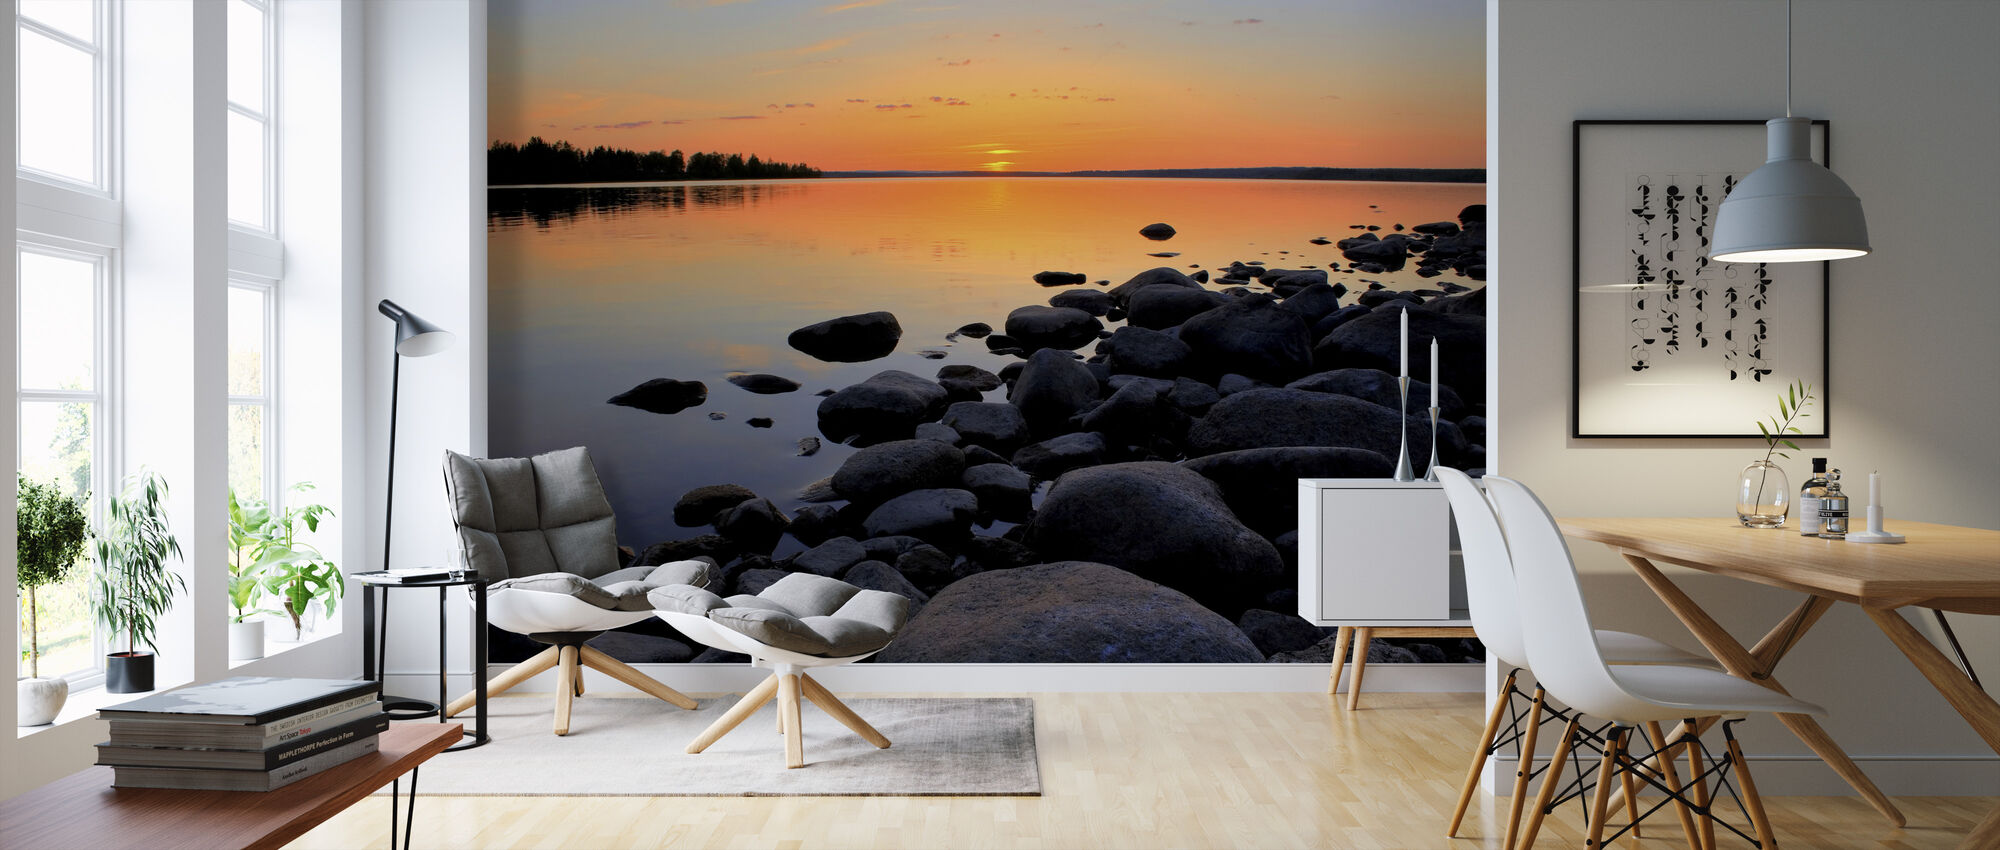 Northern Sweden Midnight Sun - Wallpaper - Living Room